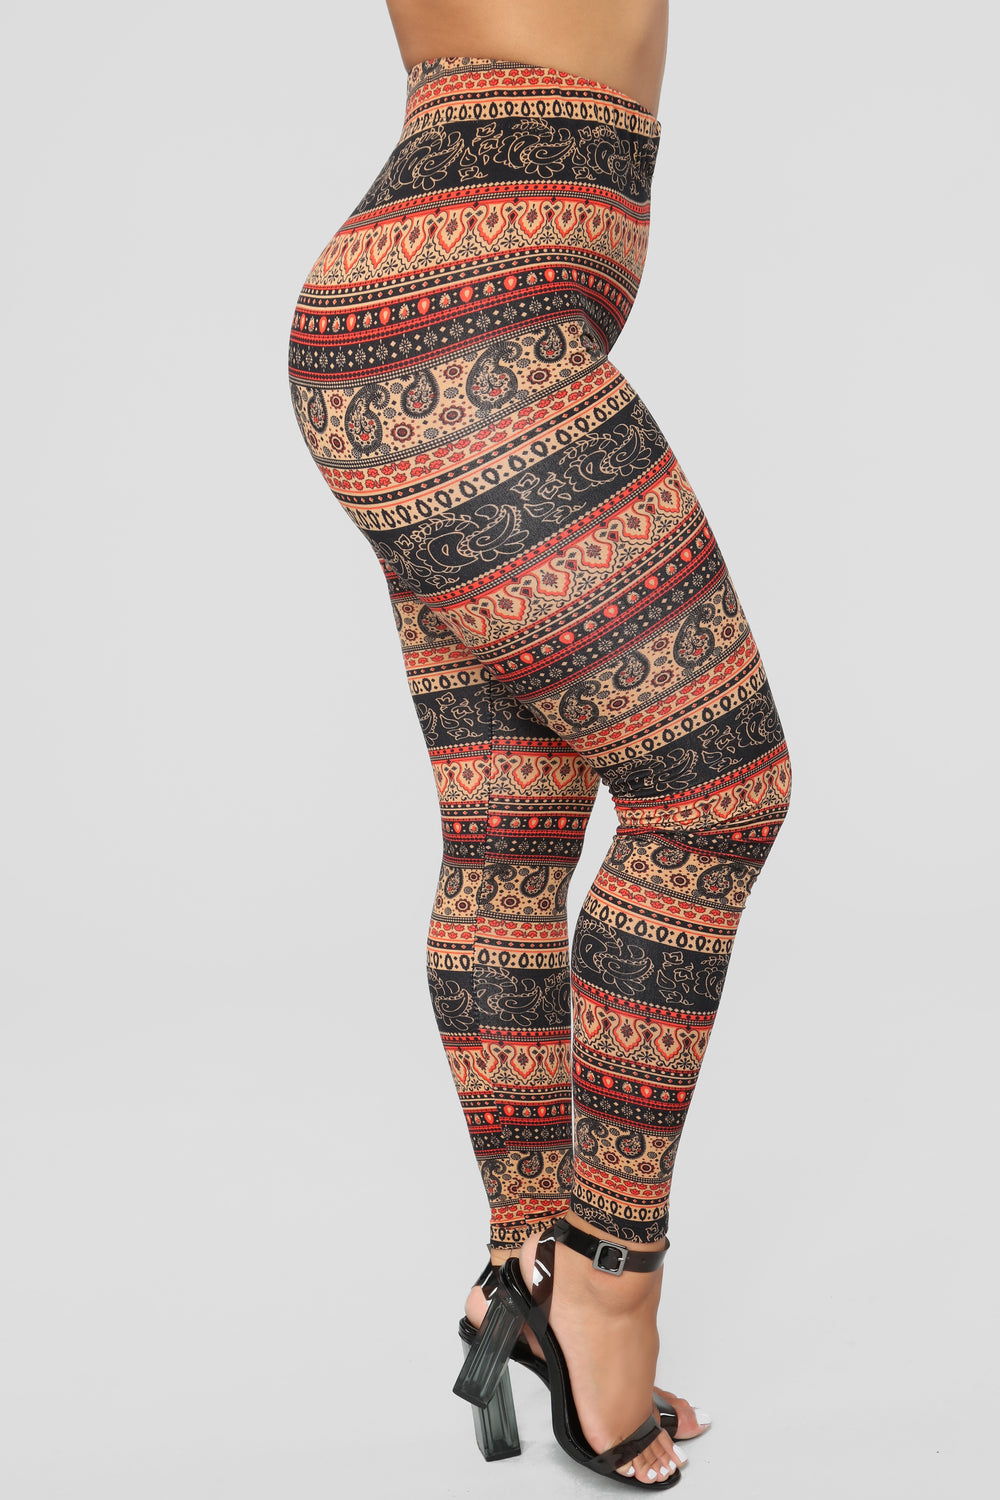 Feel My Vibes Print Leggings - Black Multi